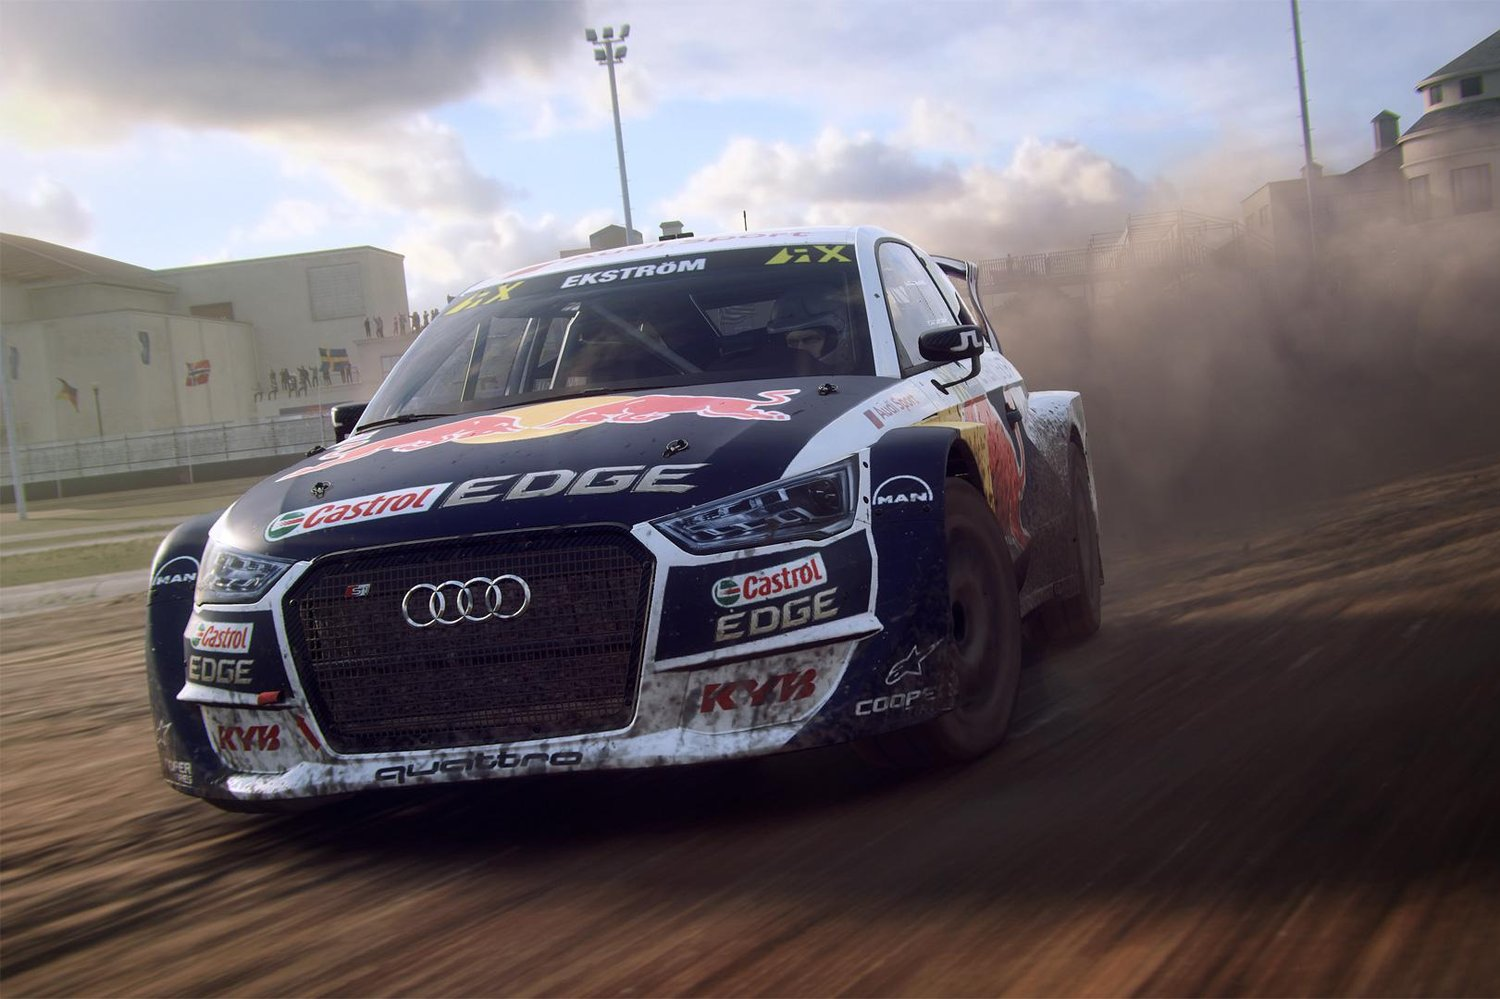 Dirt Rally Xbox One : dirt rally 2 0 is it xbox one x compatible answered ~ Aude.kayakingforconservation.com Haus und Dekorationen